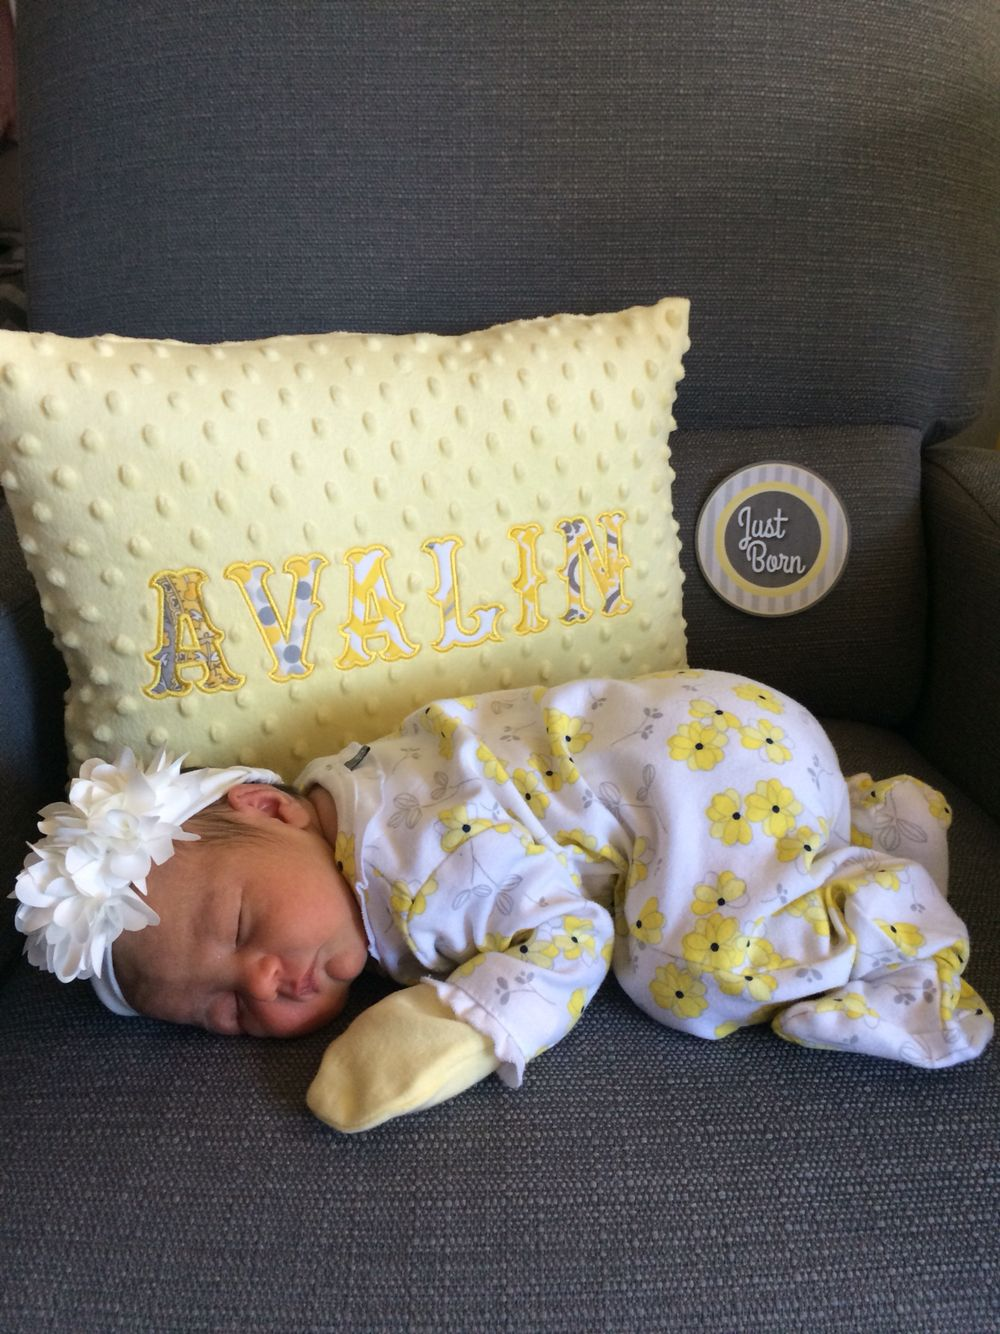 Avalin! With pillow